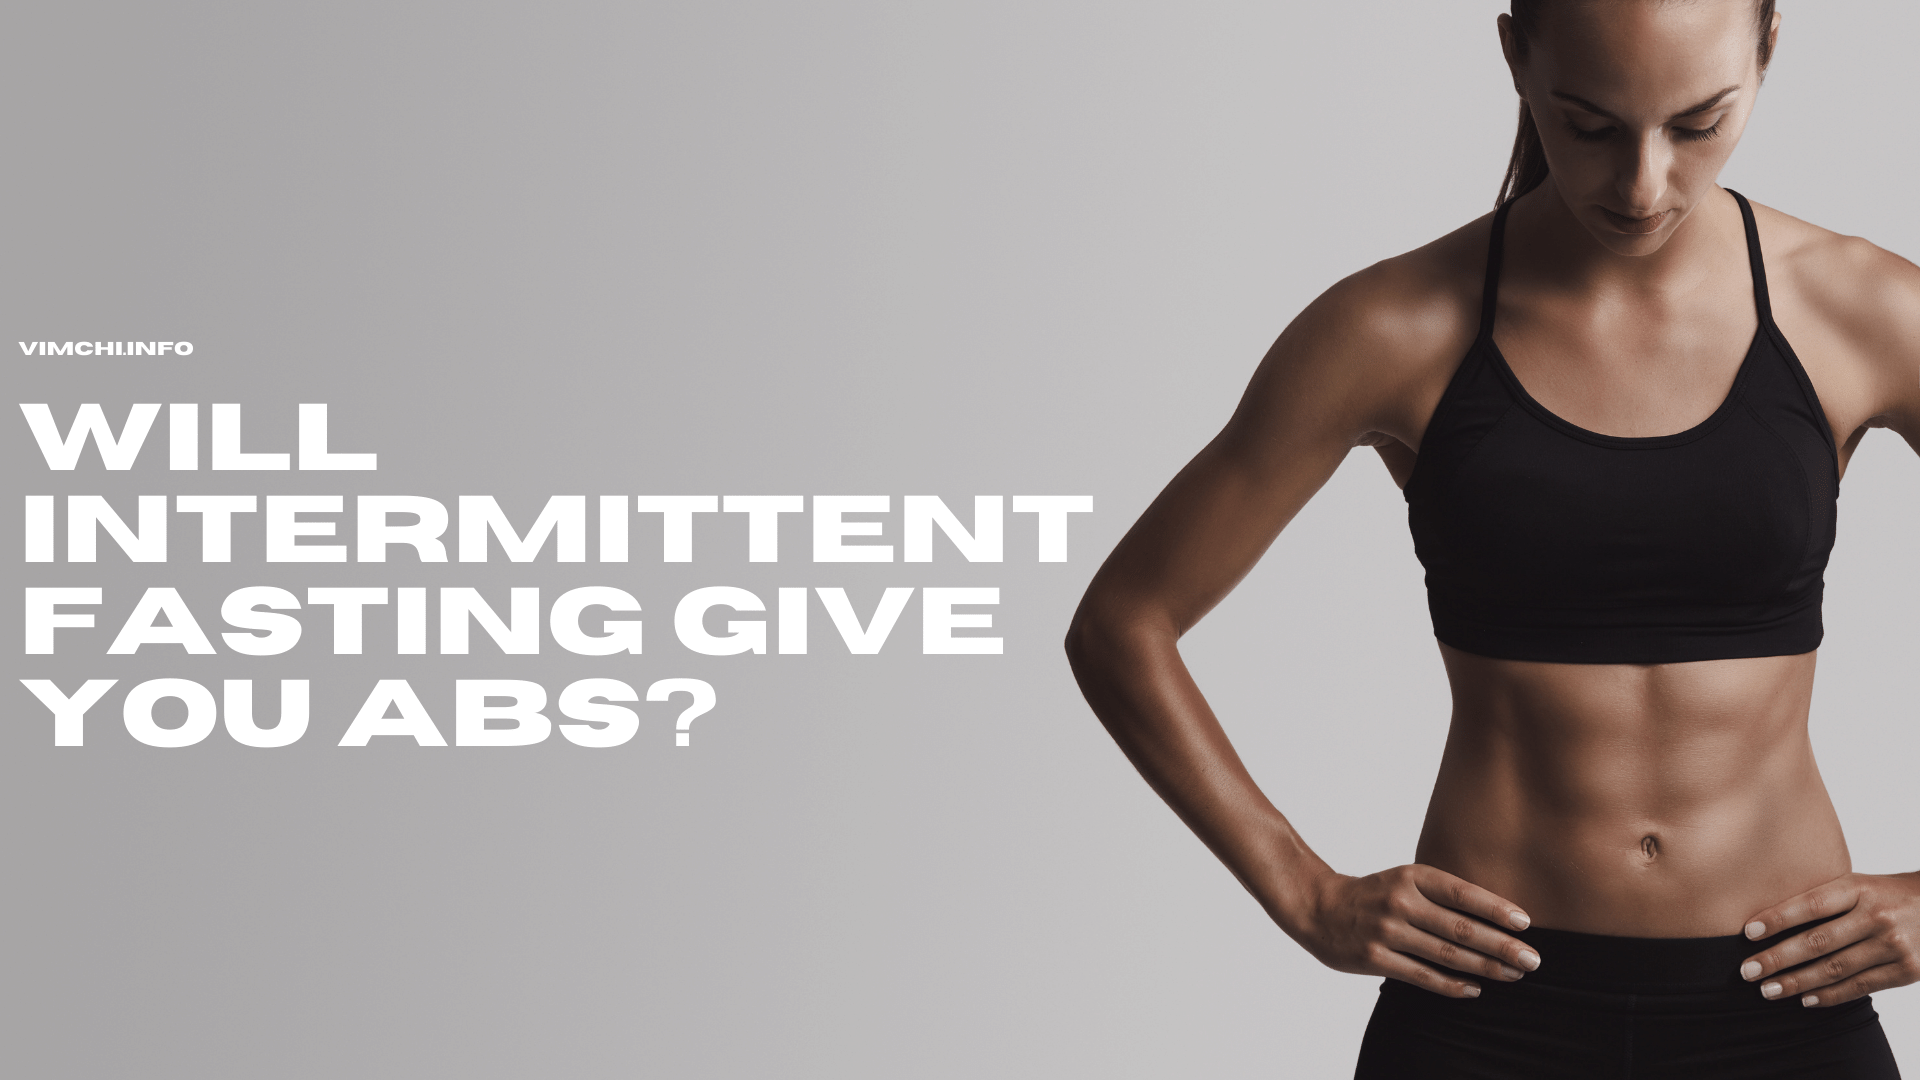 blocked Will intermittent fasting Give You Abs